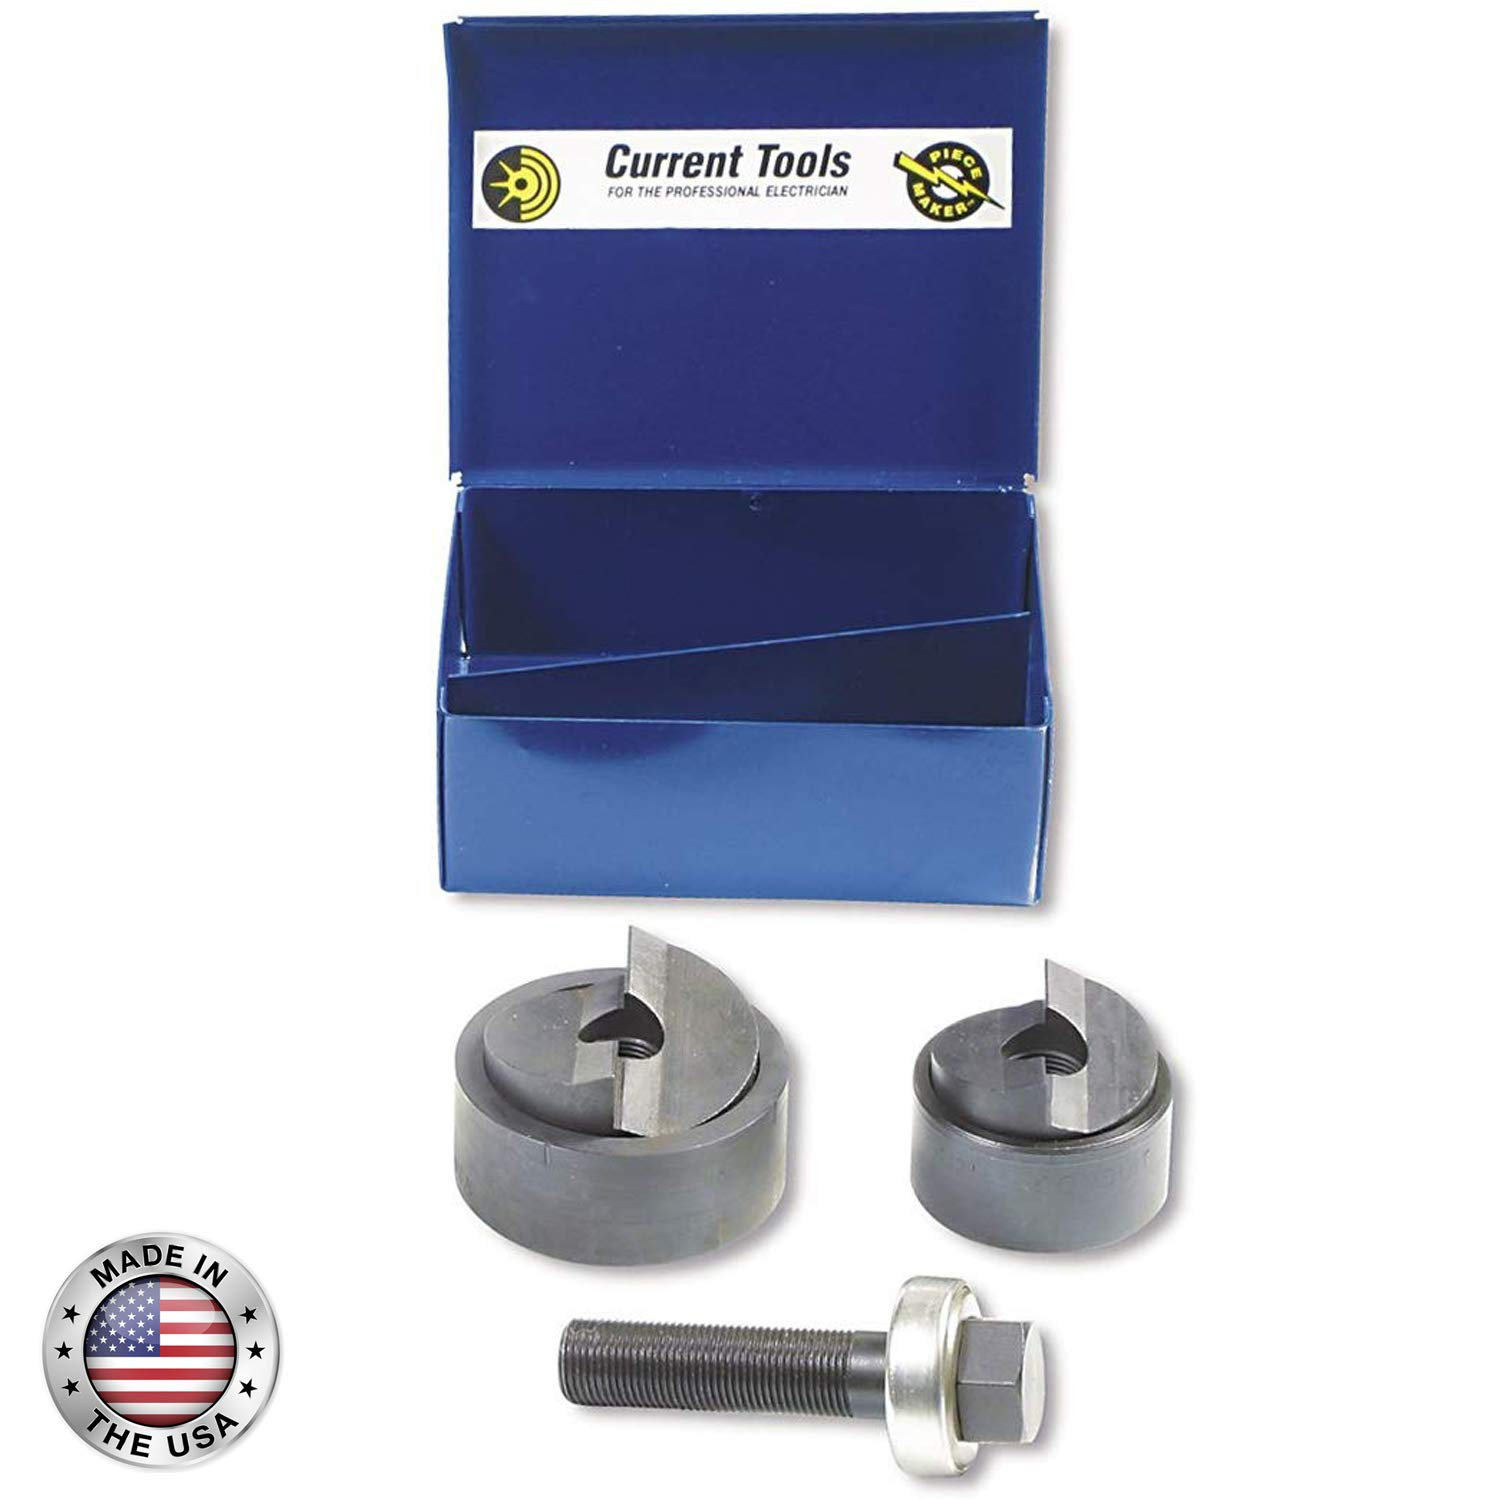 CURRENT TOOLS Manual Knockout Sets - Heavy Duty Holemaking Set with Piece Maker Punches & Dies - 159PM